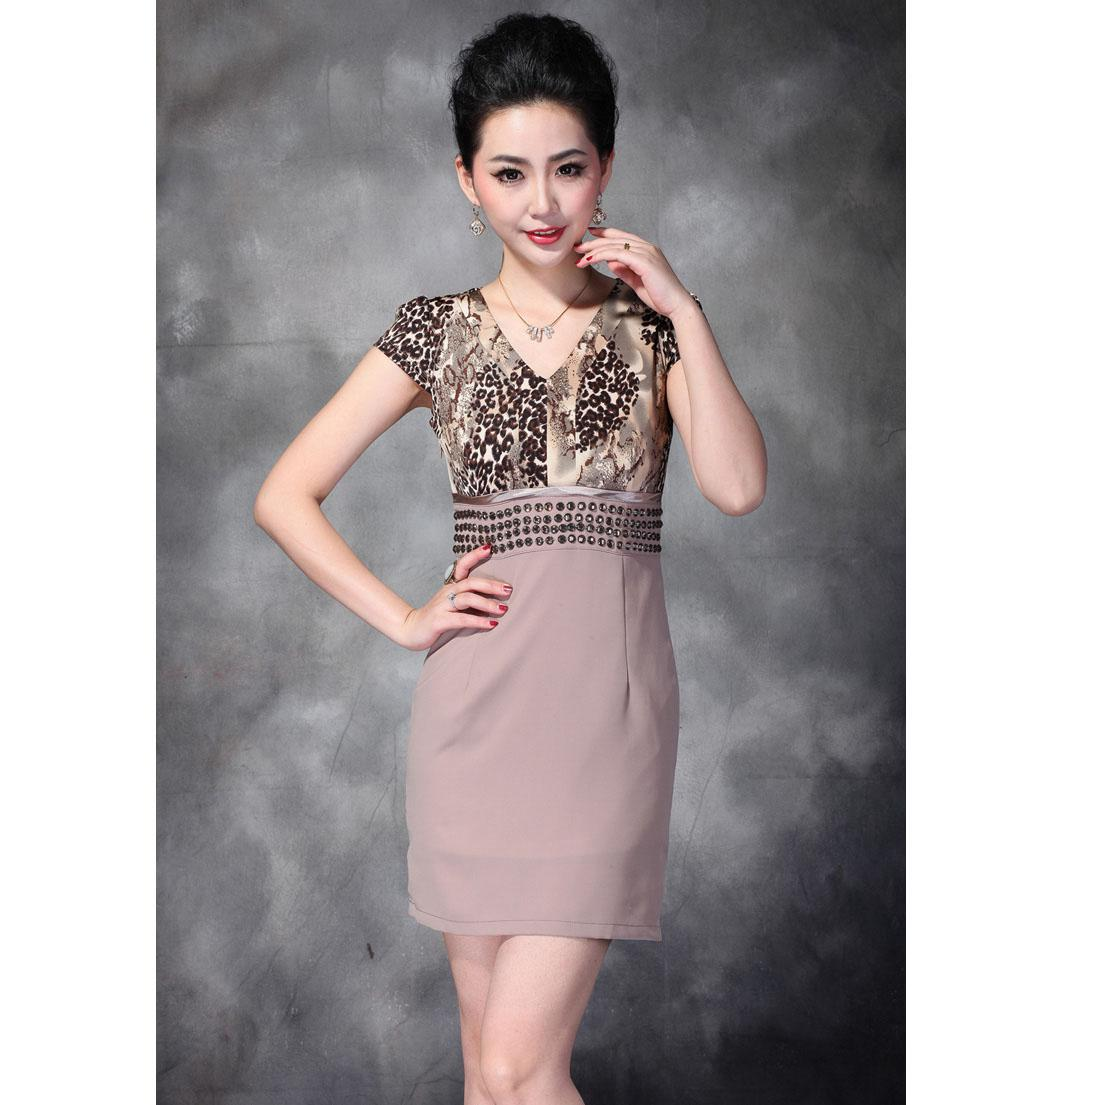 2016 Summer Bodycon Dress Hot Fashion Elegant Women&39s Dress V-neck ...